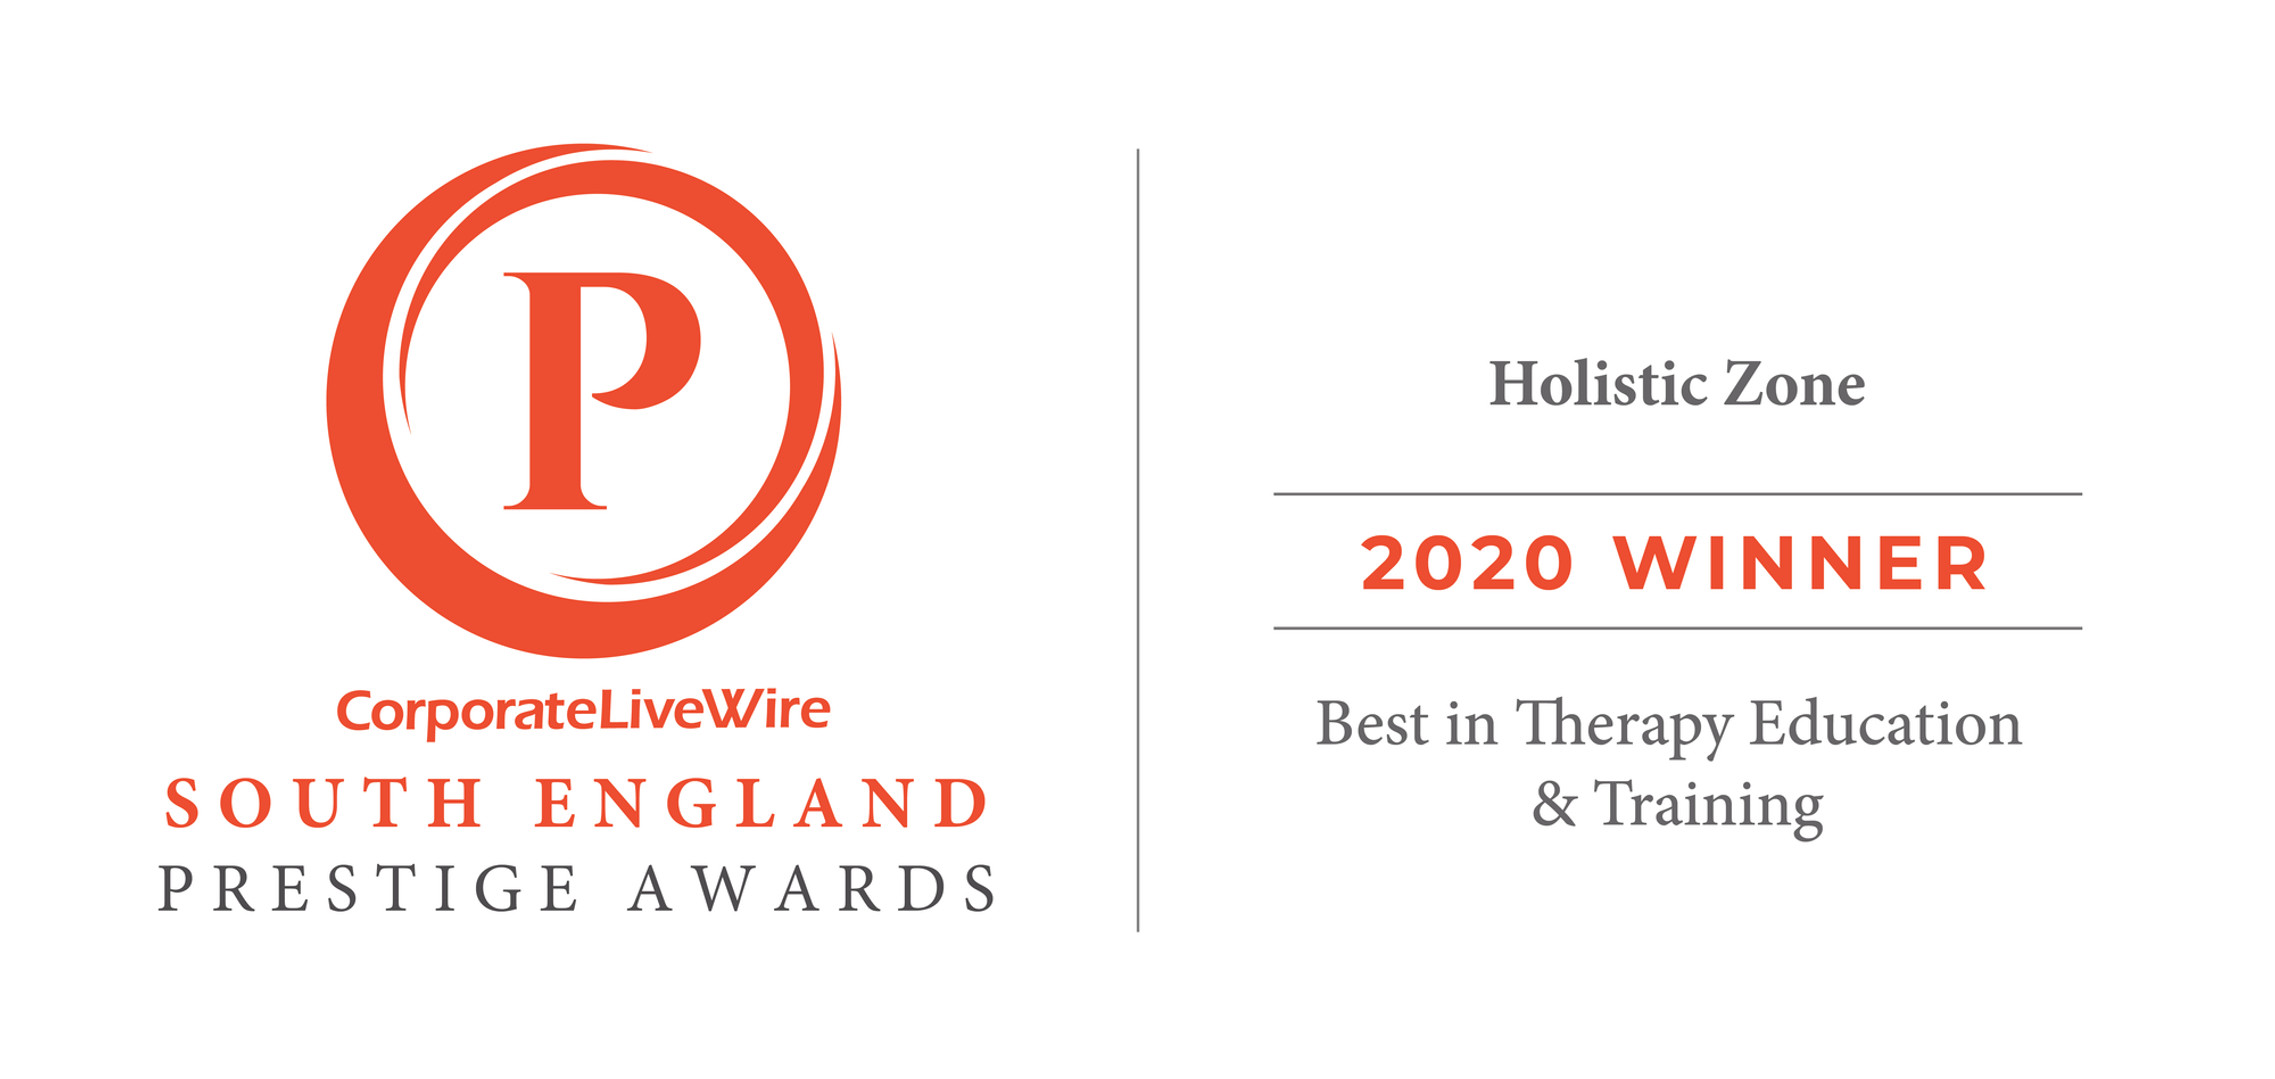 Corporate LiveWire Prestige Awards -2020